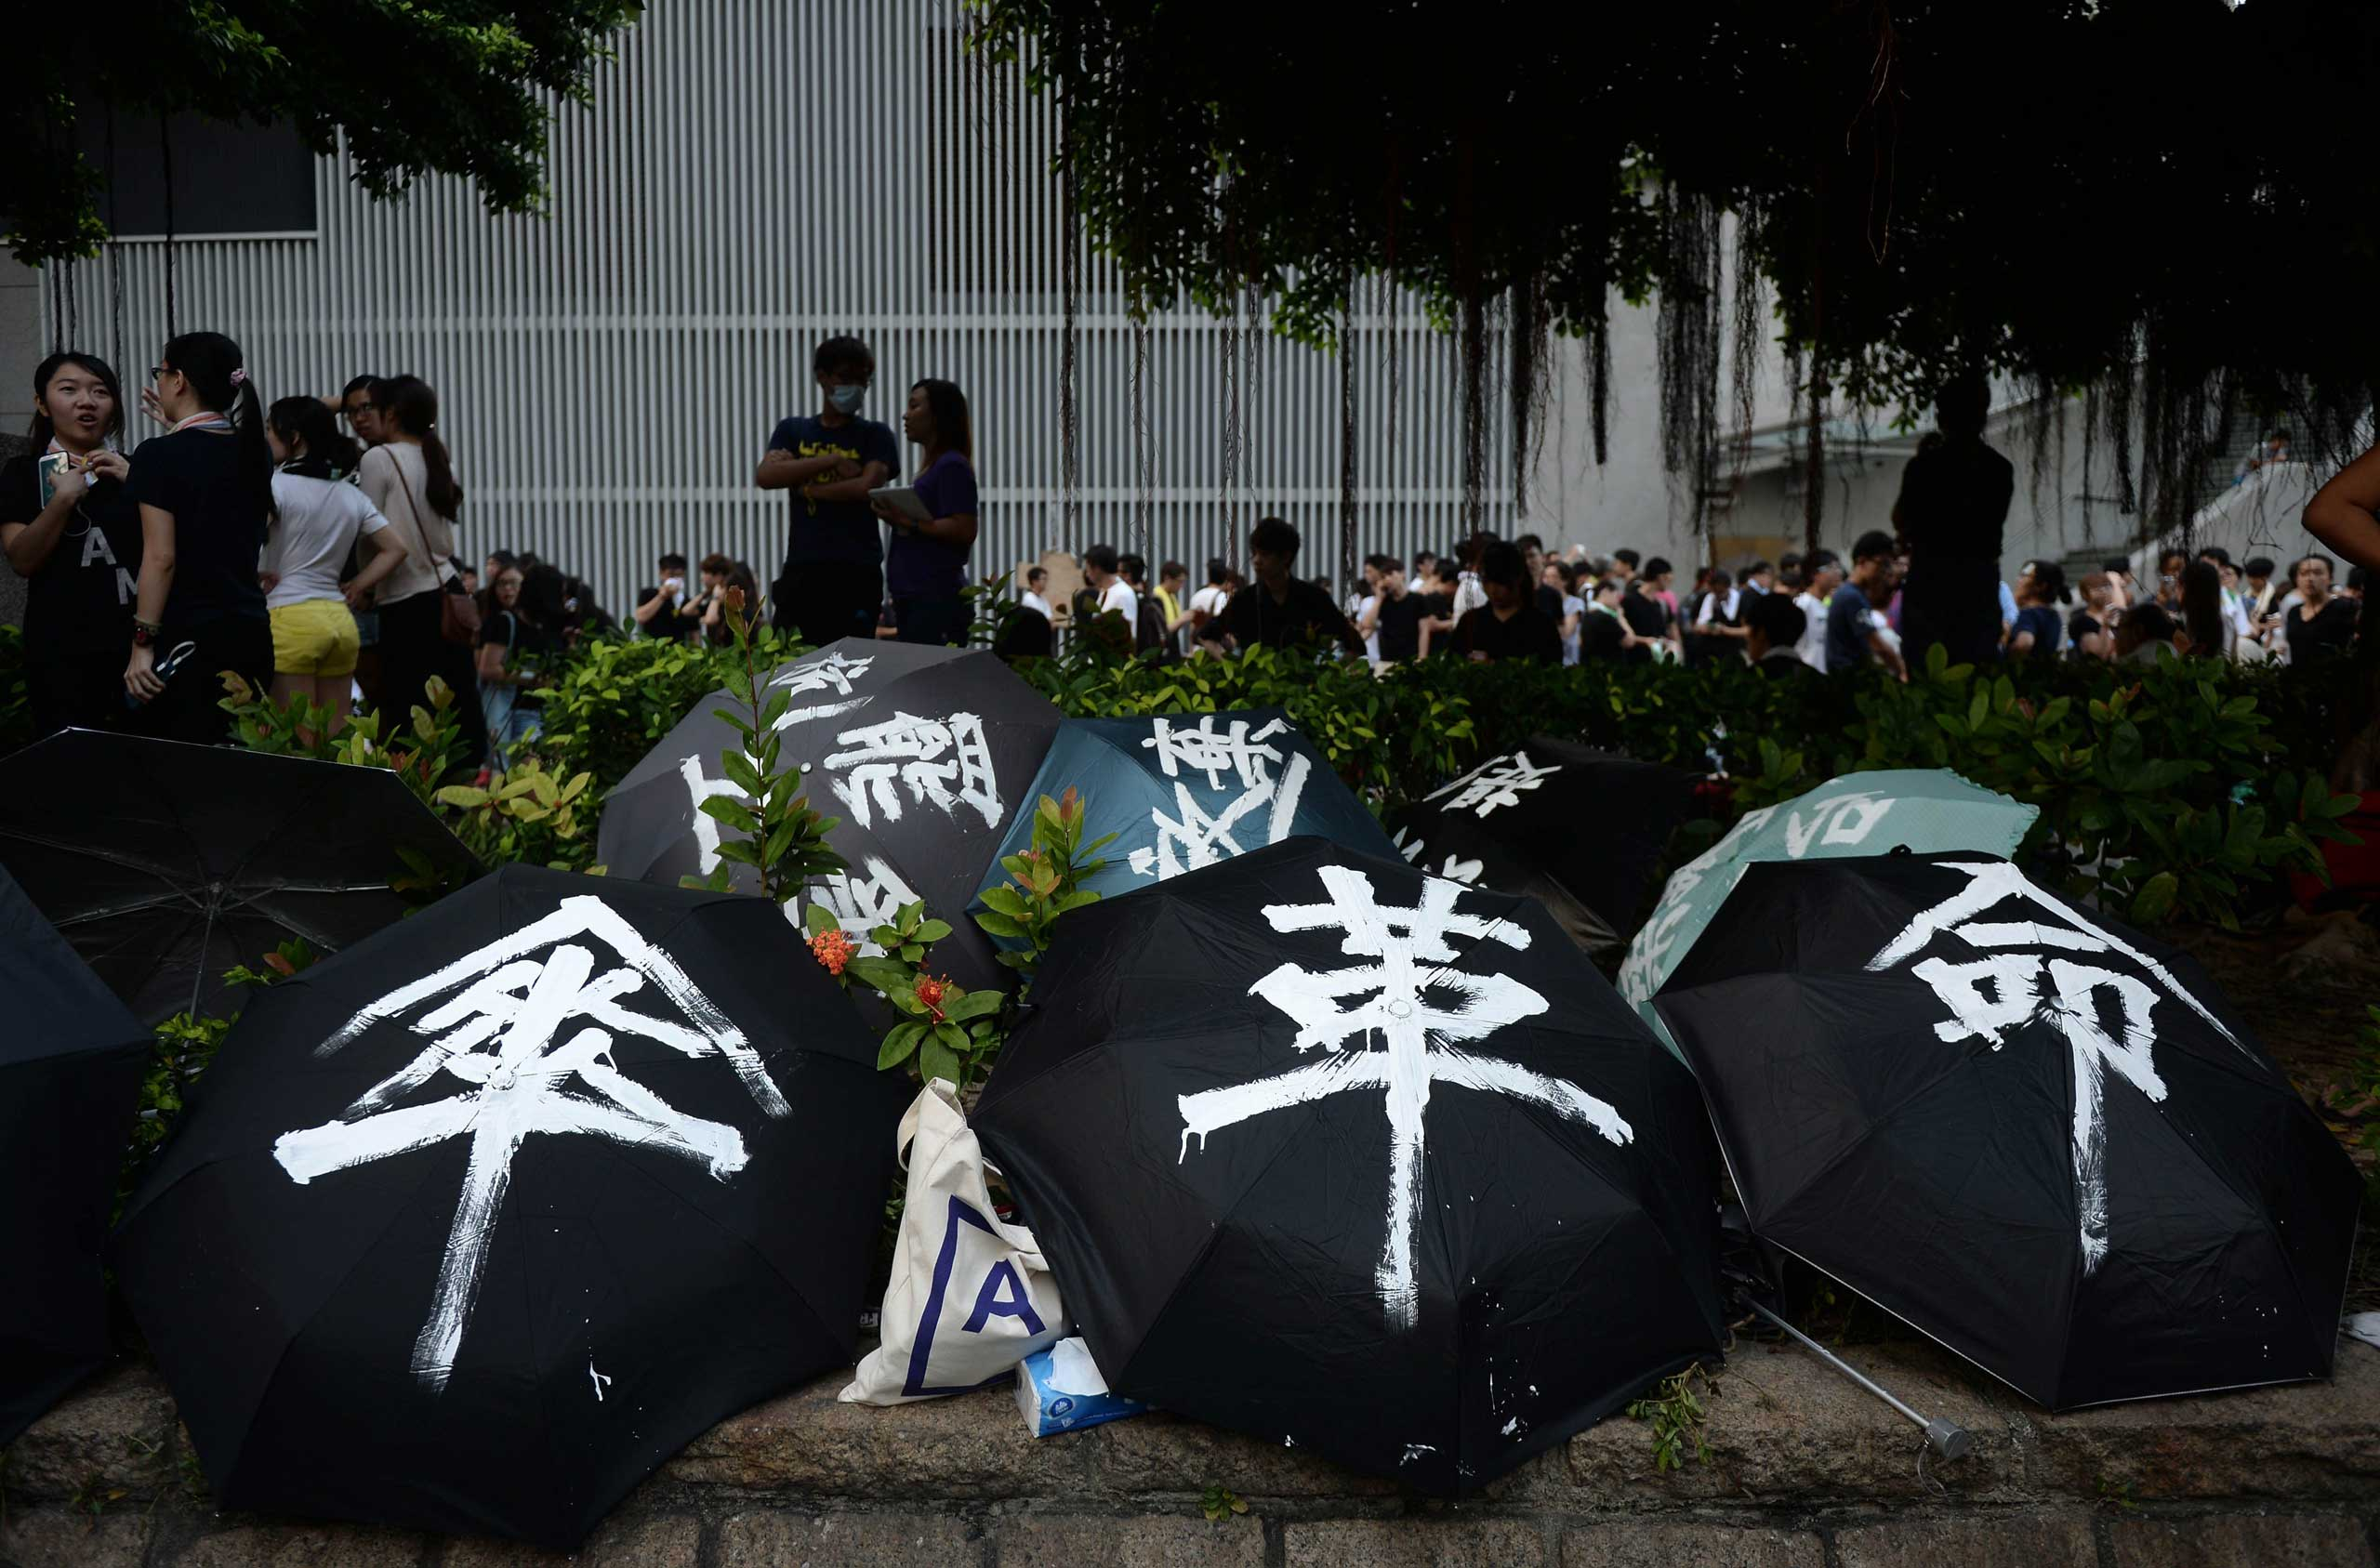 Umbrellas used to shield demonstrators from pepper spray and the sun are displayed during a pro-democracy protest near the Hong Kong government headquarters on Sept. 29, 2014.